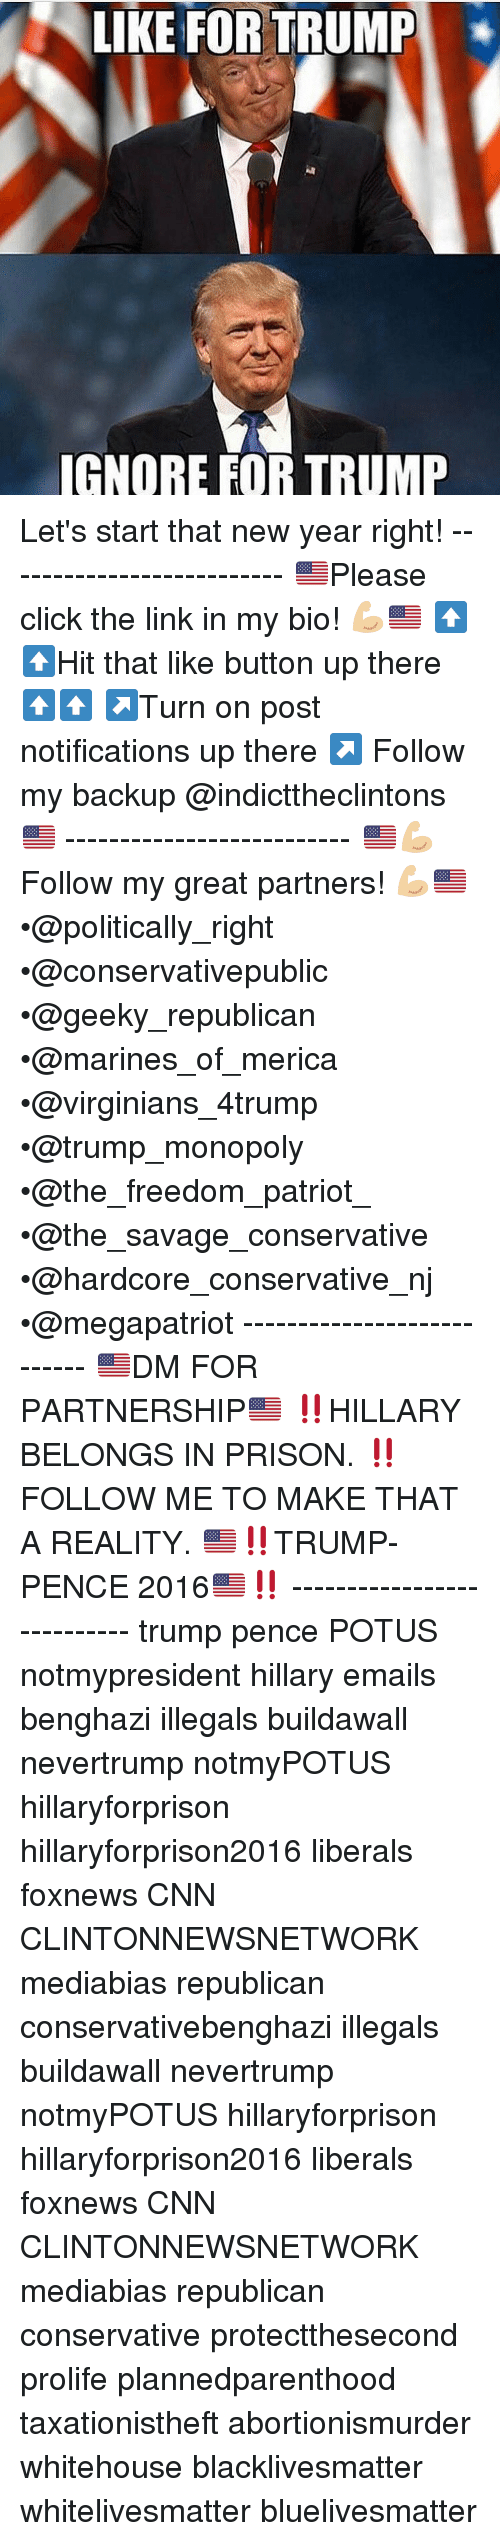 Memes, Monopoly, and Prison: LIKE FOR TRUMP  IGNORE FOR TRUMP Let's start that new year right! -------------------------- 🇺🇸Please click the link in my bio! 💪🏼🇺🇸 ⬆️⬆️Hit that like button up there ⬆️⬆️ ↗️Turn on post notifications up there ↗️ Follow my backup @indicttheclintons 🇺🇸 -------------------------- 🇺🇸💪🏼Follow my great partners! 💪🏼🇺🇸 •@politically_right •@conservativepublic •@geeky_republican •@marines_of_merica •@virginians_4trump •@trump_monopoly •@the_freedom_patriot_ •@the_savage_conservative •@hardcore_conservative_nj •@megapatriot --------------------------- 🇺🇸DM FOR PARTNERSHIP🇺🇸 ‼️HILLARY BELONGS IN PRISON. ‼️FOLLOW ME TO MAKE THAT A REALITY. 🇺🇸‼️TRUMP-PENCE 2016🇺🇸‼️ --------------------------- trump pence POTUS notmypresident hillary emails benghazi illegals buildawall nevertrump notmyPOTUS hillaryforprison hillaryforprison2016 liberals foxnews CNN CLINTONNEWSNETWORK mediabias republican conservativebenghazi illegals buildawall nevertrump notmyPOTUS hillaryforprison hillaryforprison2016 liberals foxnews CNN CLINTONNEWSNETWORK mediabias republican conservative protectthesecond prolife plannedparenthood taxationistheft abortionismurder whitehouse blacklivesmatter whitelivesmatter bluelivesmatter